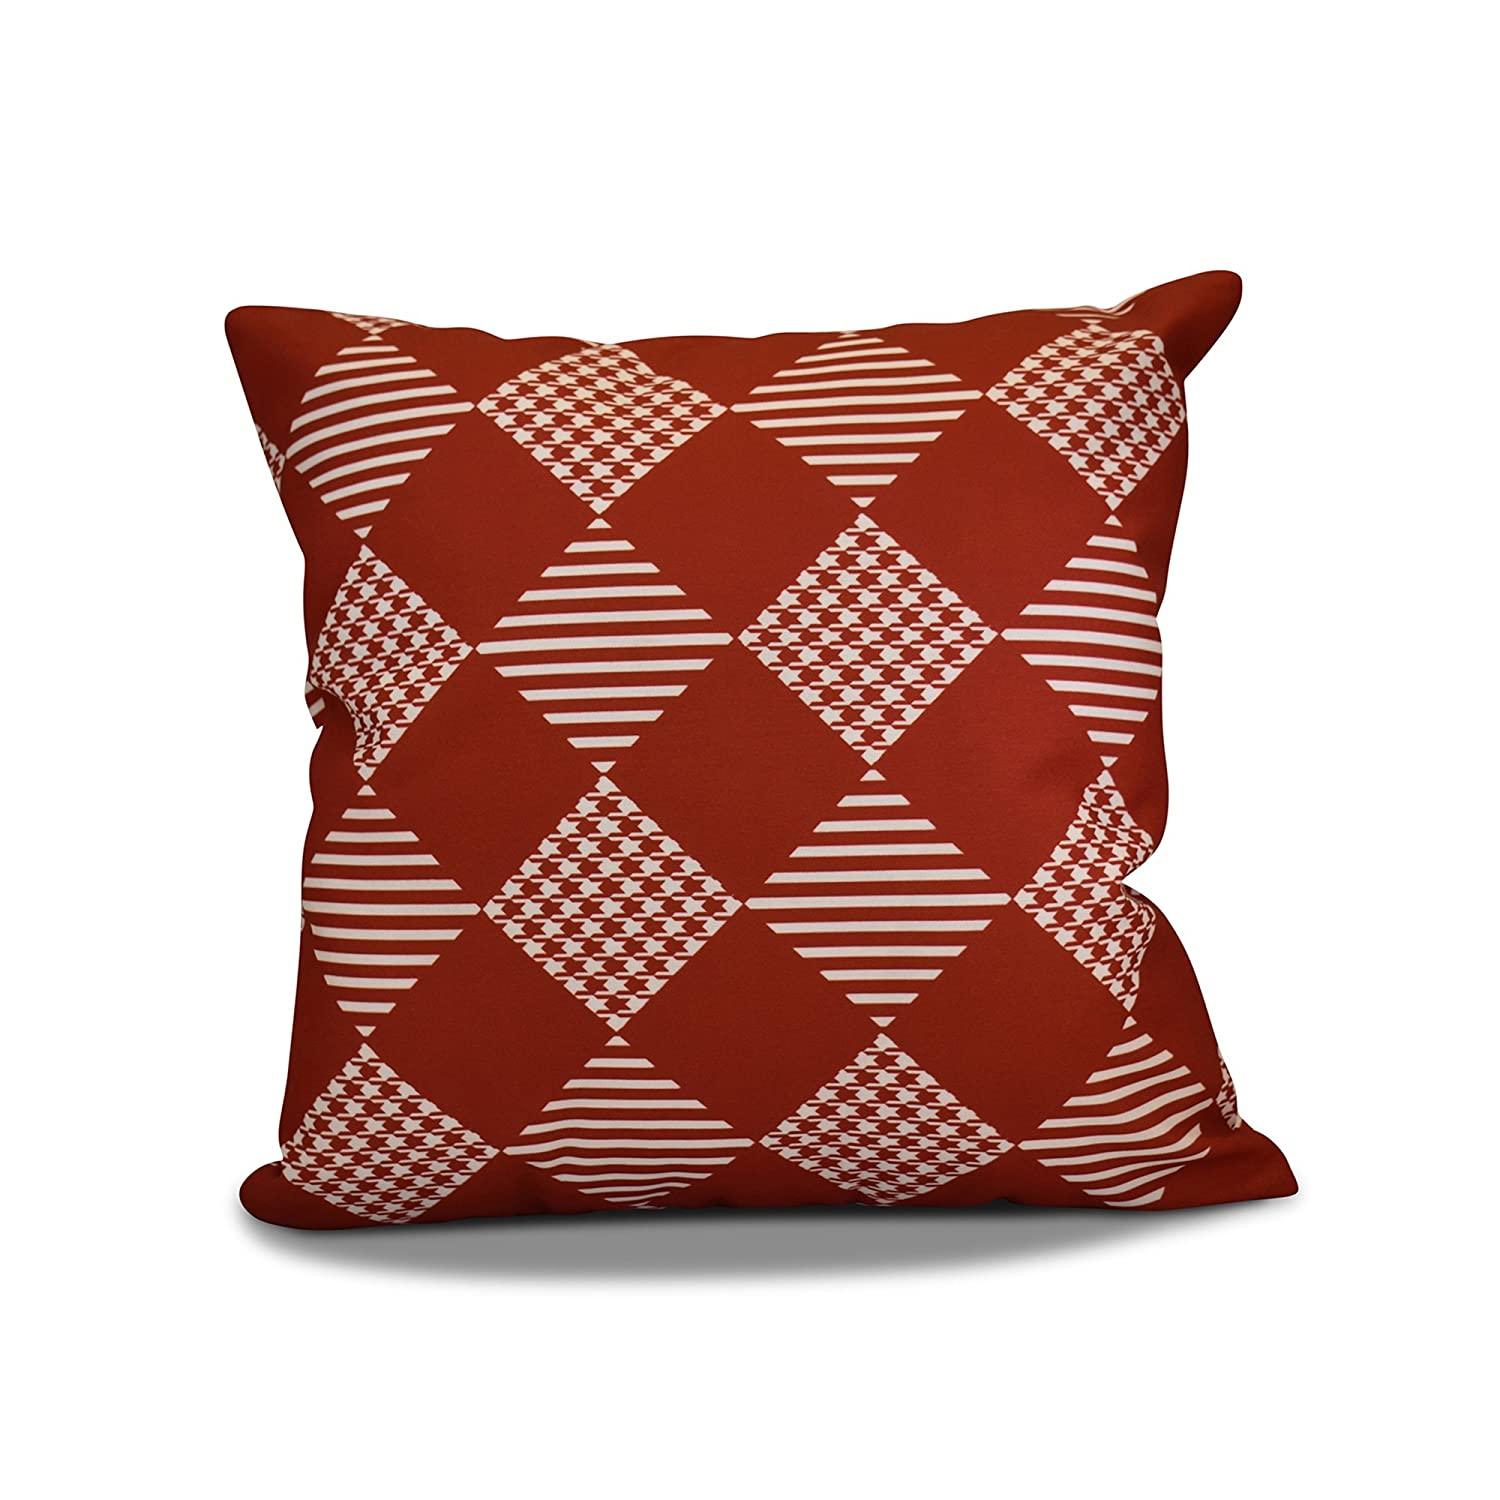 E by design PHGN708RE1-16 16 x 16-inch, Check It Twice Pillow, Red 16x16,